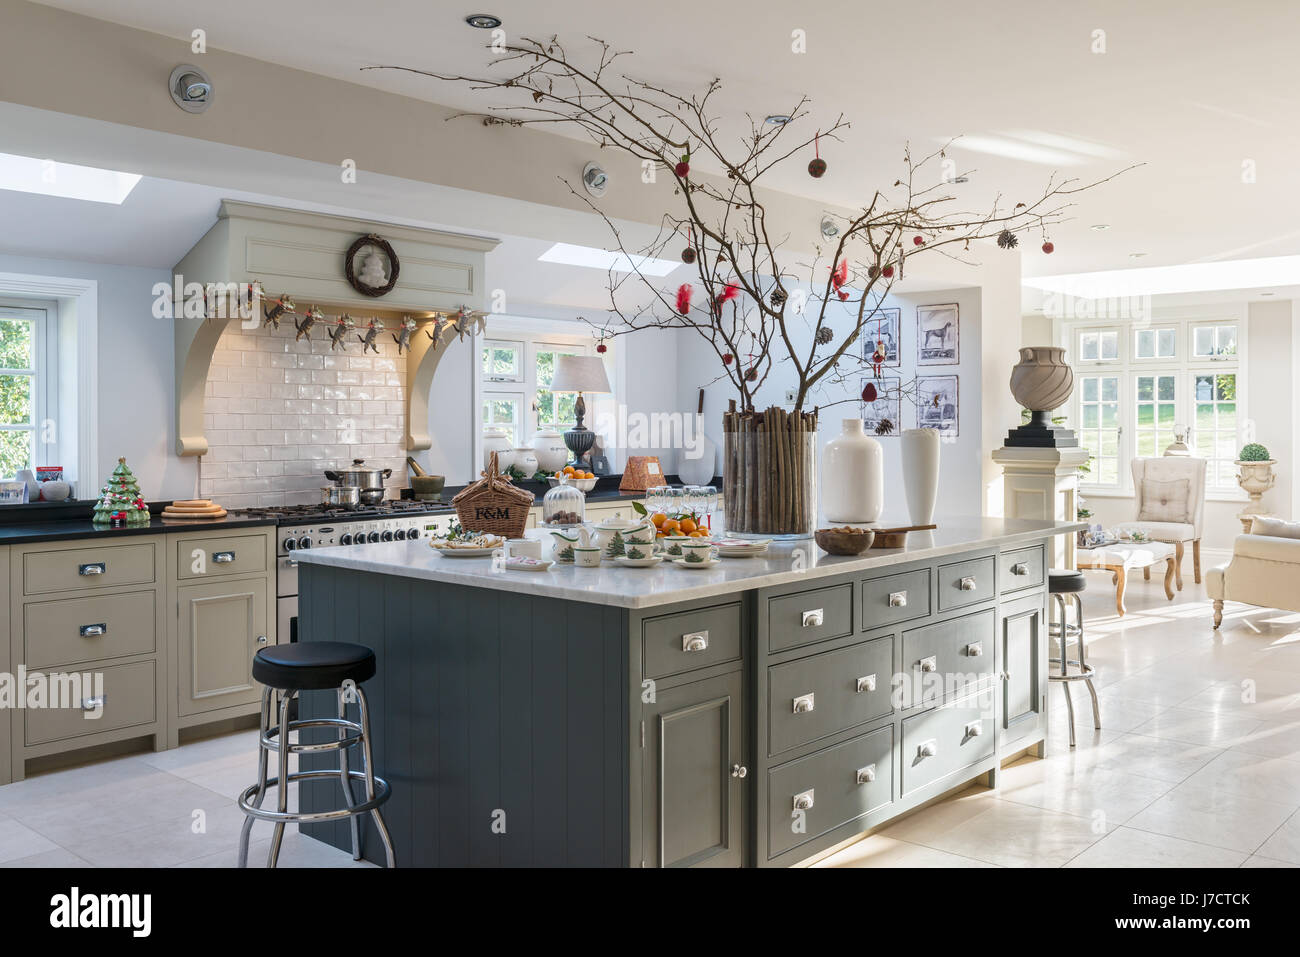 Spacious kitchen island unit with Christmas decorations in 18th ...